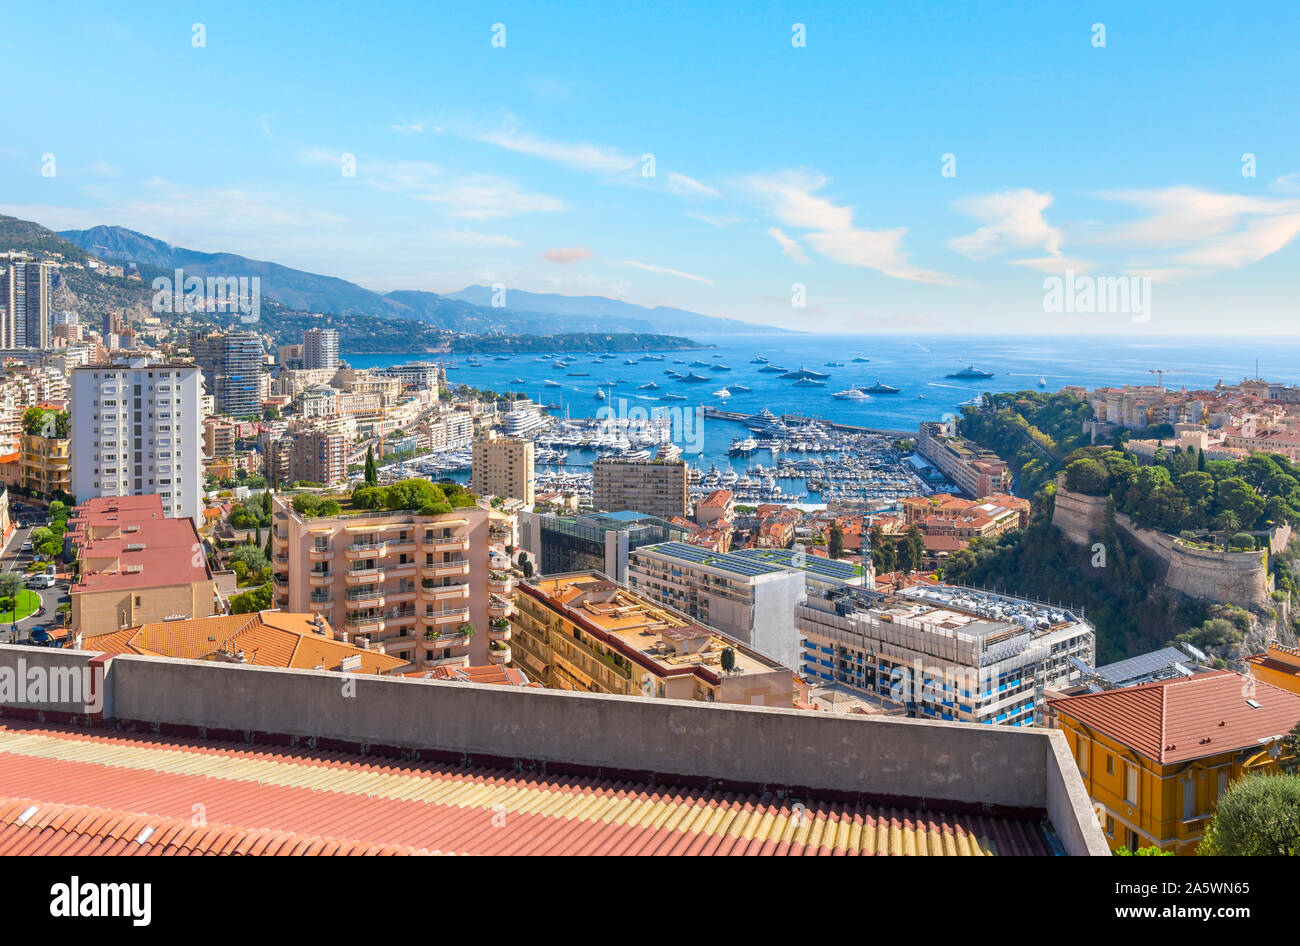 View of the Mediterranean Sea, and the marina, port, city and rock of Monte Carlo, Monaco from a terrace high on a hill Stock Photo